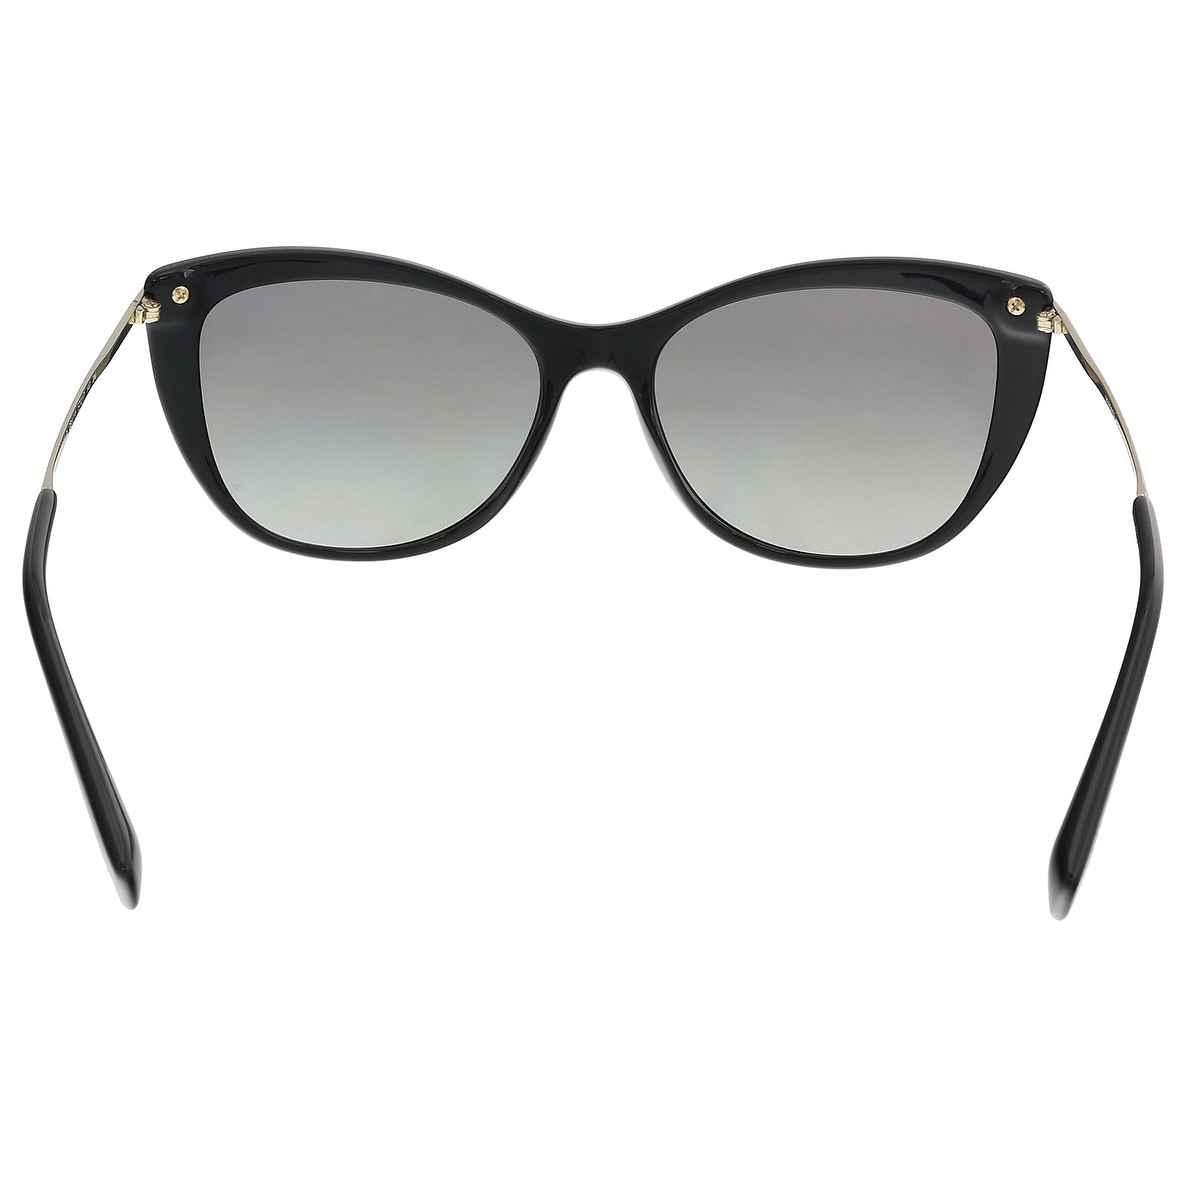 7e9191156d Shop Versace VE4345B GB1 11 Black Cat Eye Sunglasses - 57-17-140 - On Sale  - Free Shipping Today - Overstock - 21655754